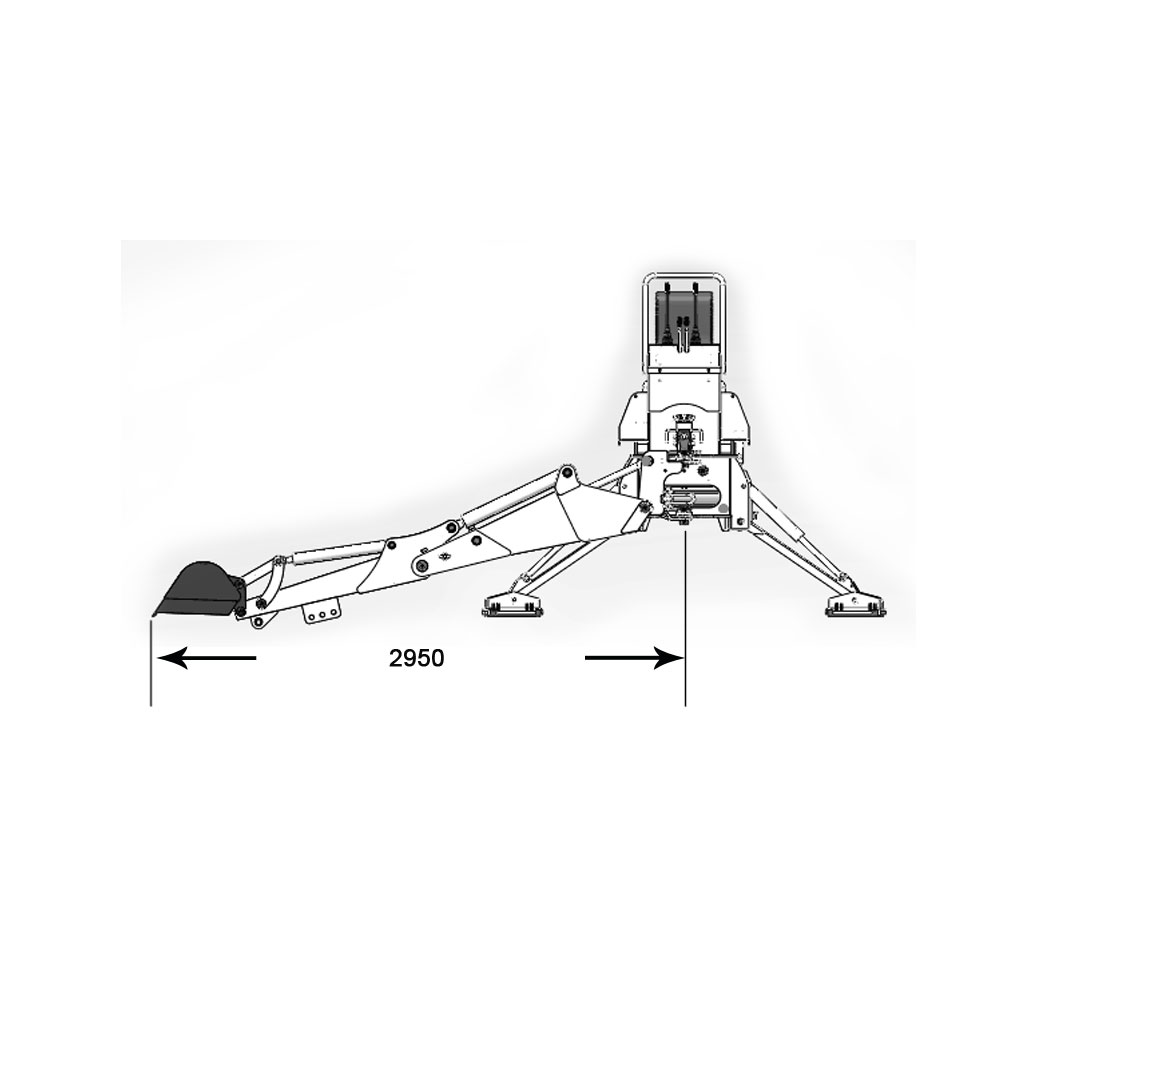 BOWELL TRACTOR EUROPE - Bowell Backhoe BH-7